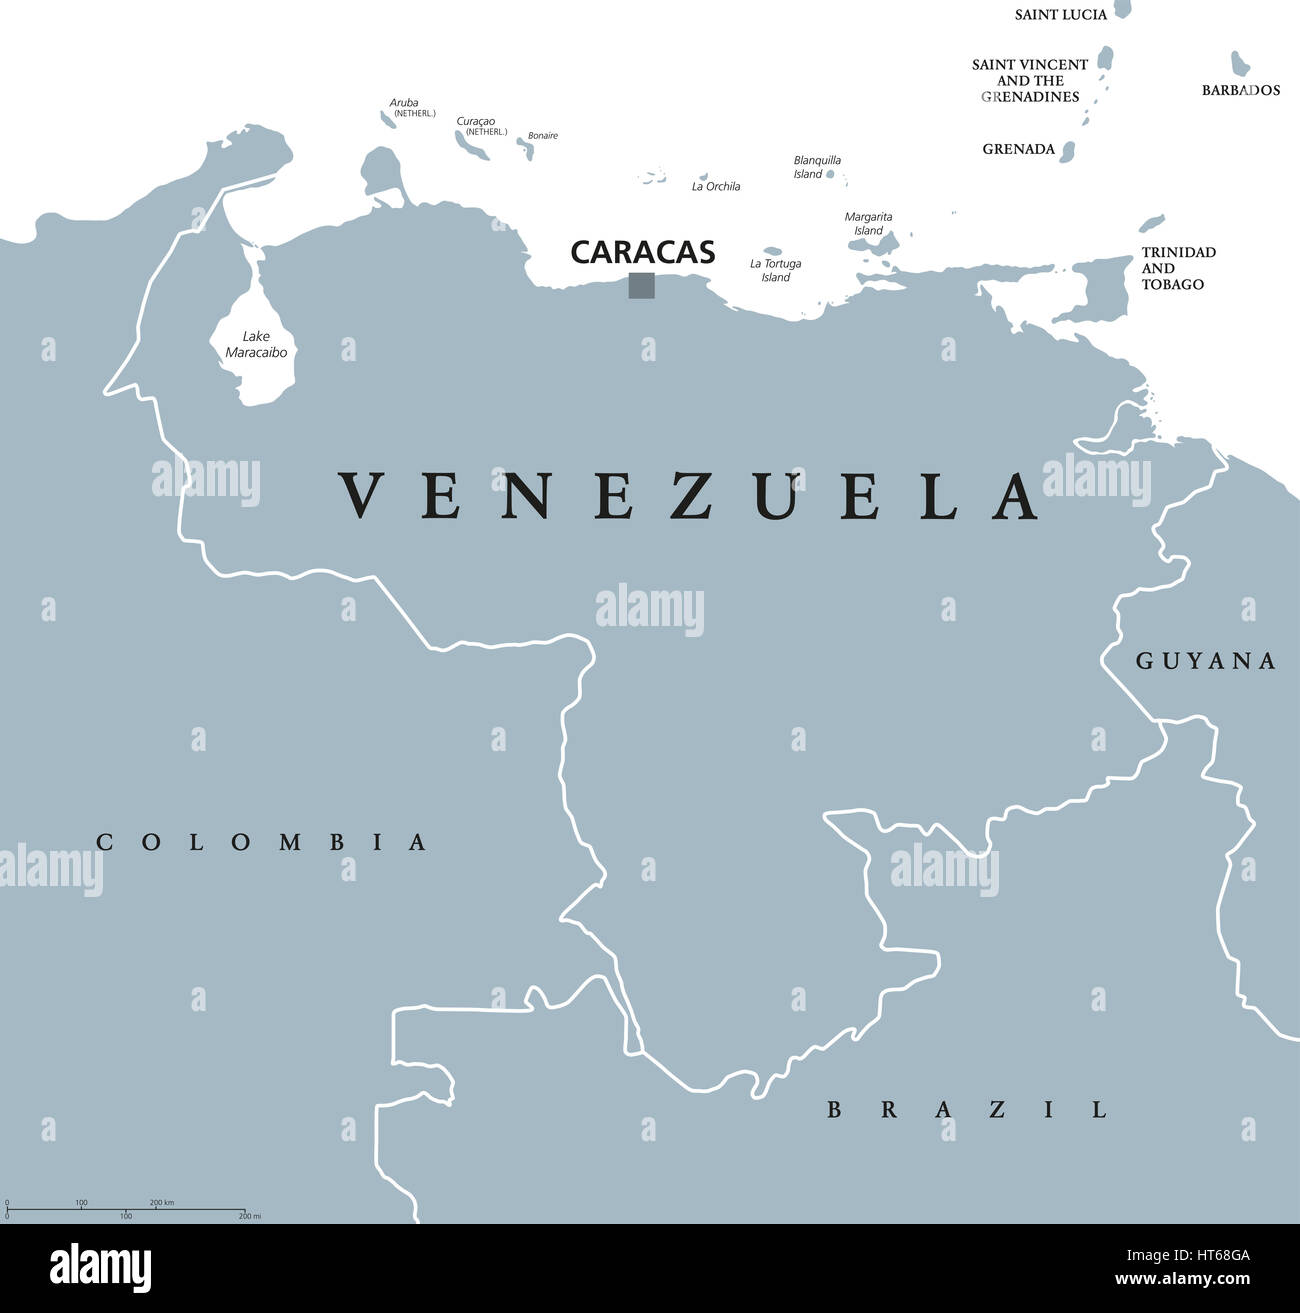 Venezuela political map with capital Caracas and national ... on labeled map of pennsylvania, labeled map of united kingdom, labeled map of the u.s, labeled map of tobago, labeled map of nigeria, labeled map of the british isles, labeled map of bodies of water, labeled map of fiji islands, labeled map of switzerland, labeled map of trinidad, labeled map of northern europe, labeled map of the caribbean islands, labeled map of iran, labeled map of new caledonia, labeled map of amazon river, labeled map of indochina, labeled map of western united states, labeled map of syria, labeled map of ussr, labeled map of iraq,